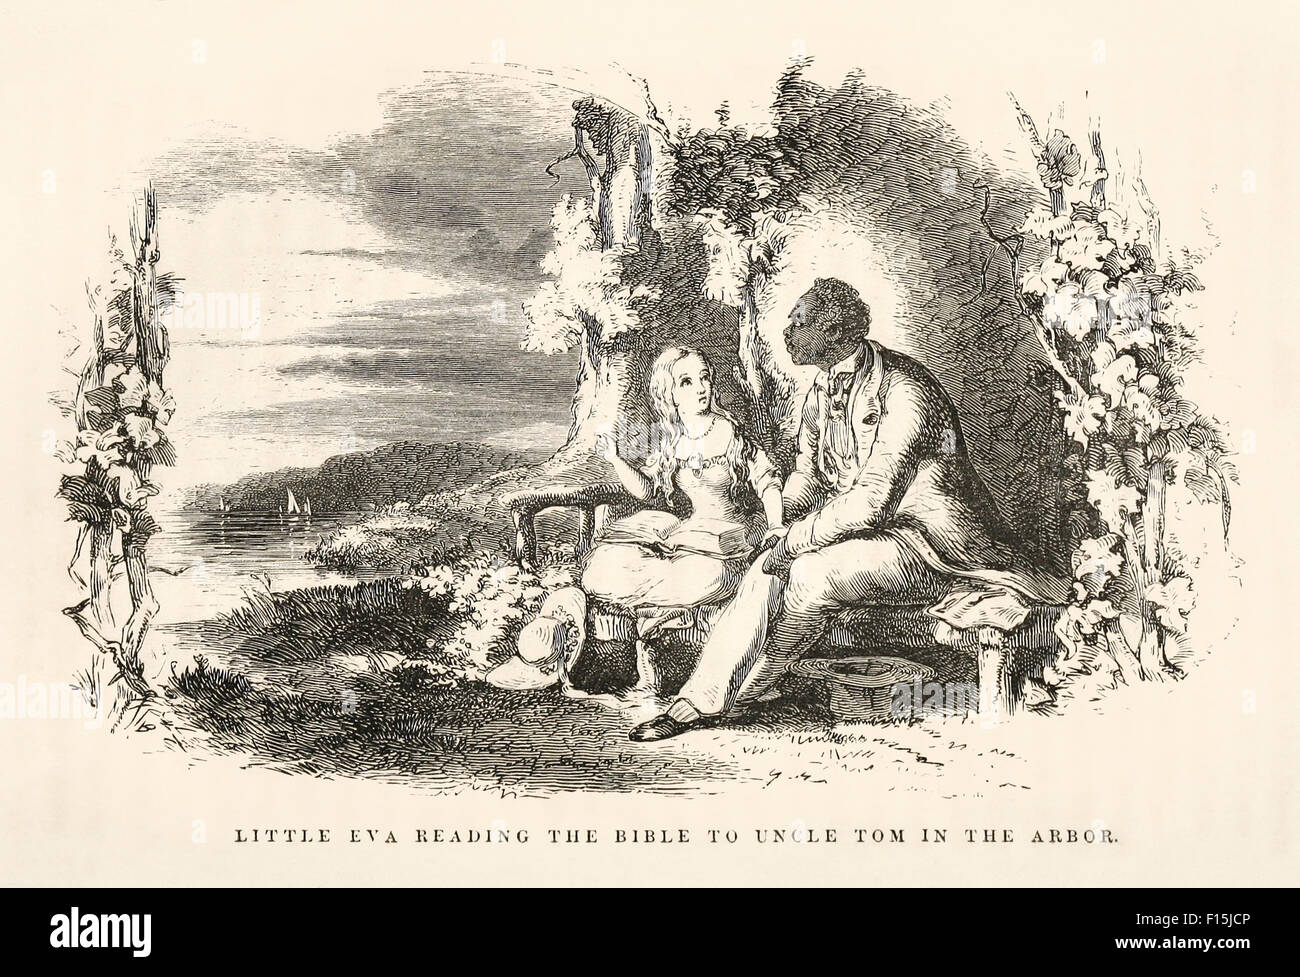 'Little Eva reading the Bible to Uncle Tom in the arbor.' Illustration by Hammatt Billings (1818-1874) from - Stock Image